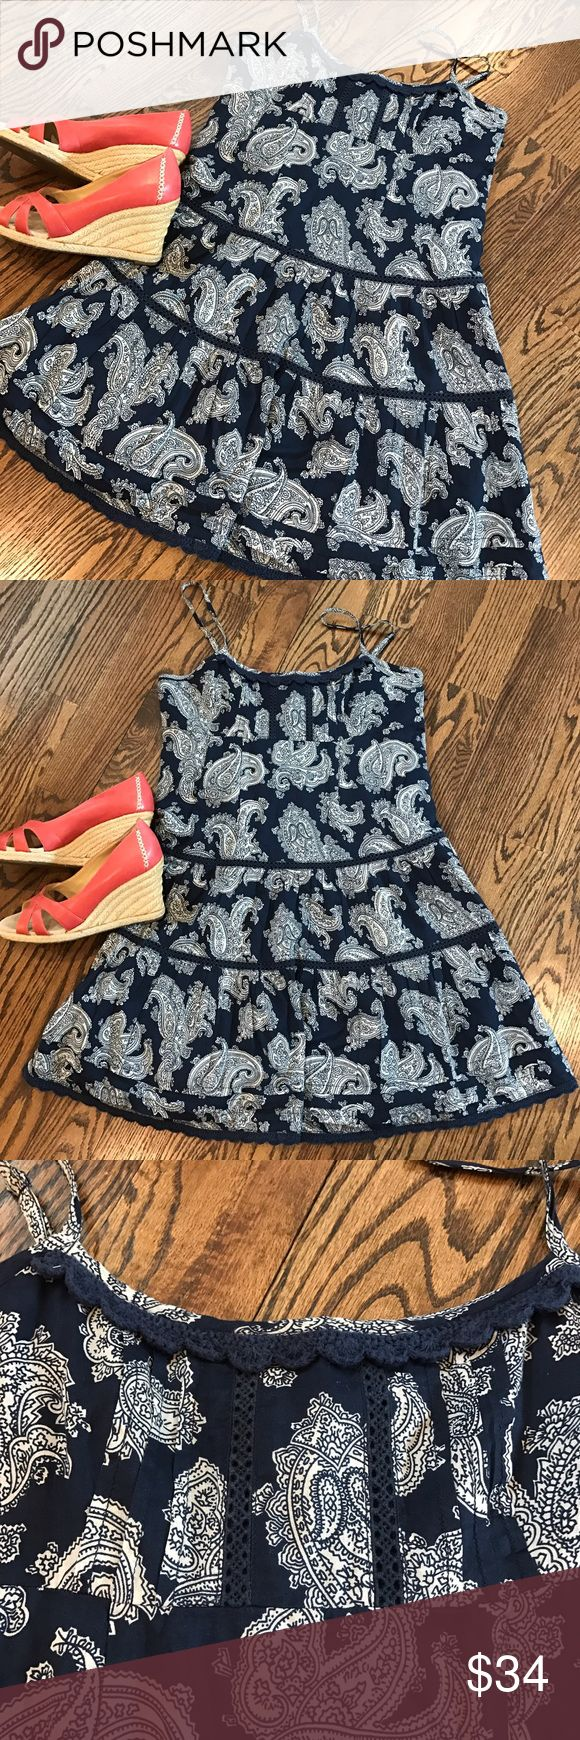 ⭐️New⭐️Navy paisley Juicy Couture patio dress This tiered patio dress from Juicy Couture has a navy & white paisley pattern with crocheted trim & inserts.  It is 100% cotton and fully lined.  It has a side zipper and adjustable straps.  Perfectly preppy. Size 4.  Very good used condition. Juicy Couture Dresses